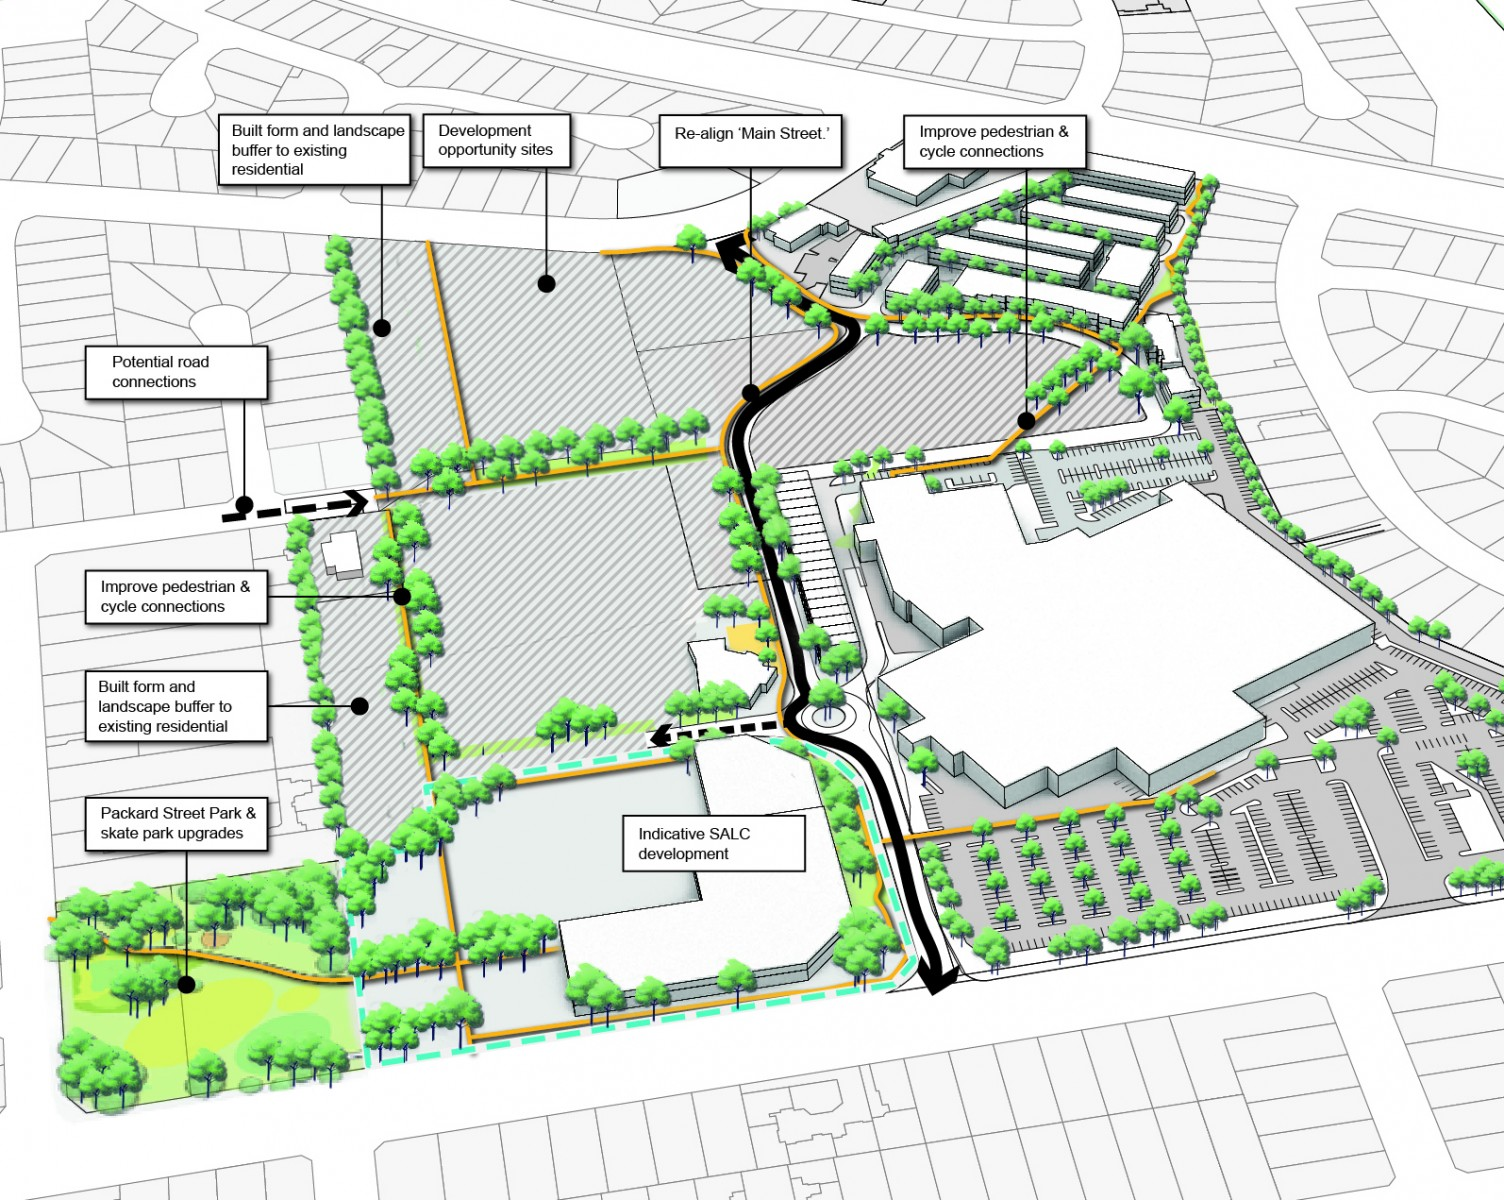 Keilor Downs Urban Design Framework